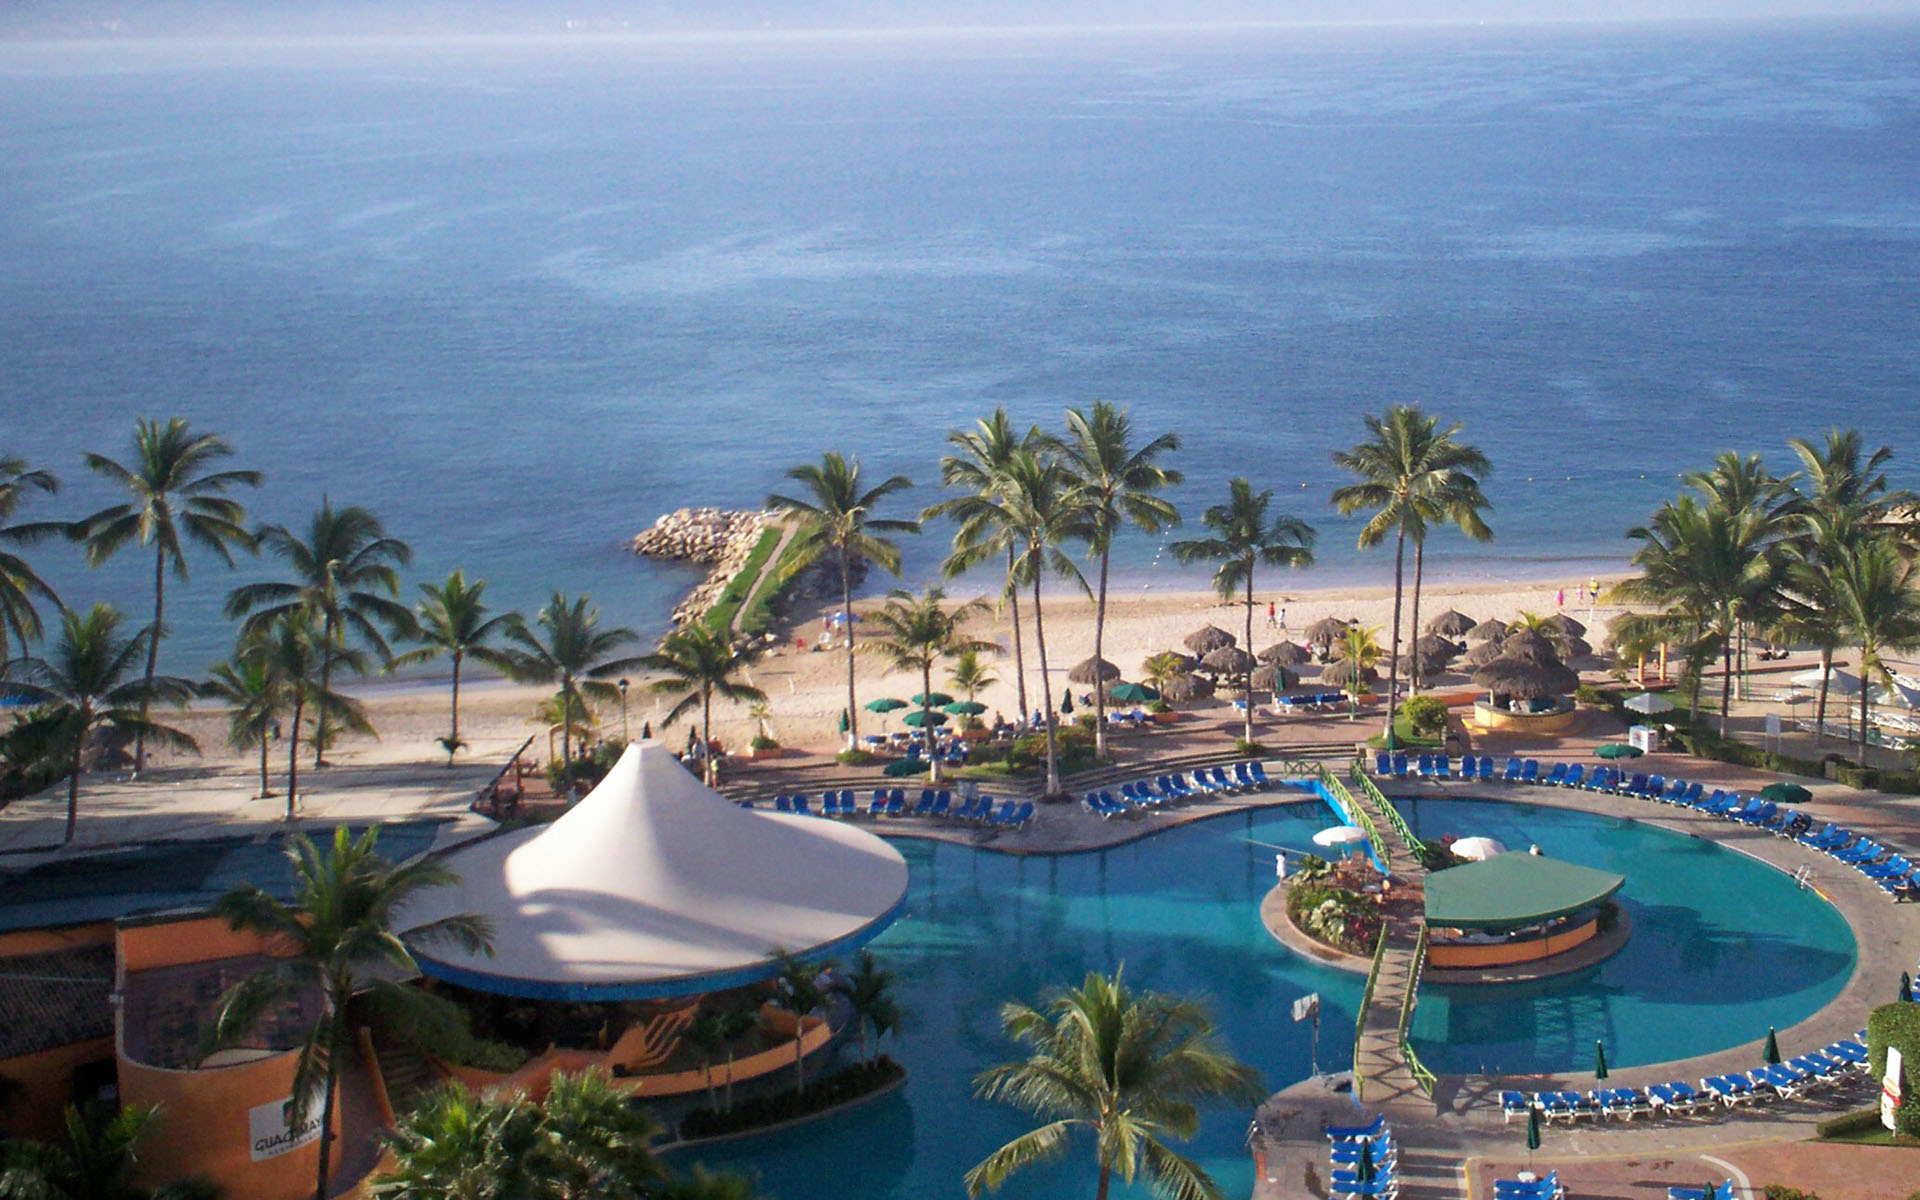 Superb Holiday Puerto Vallarta Mexico Hotel Overview